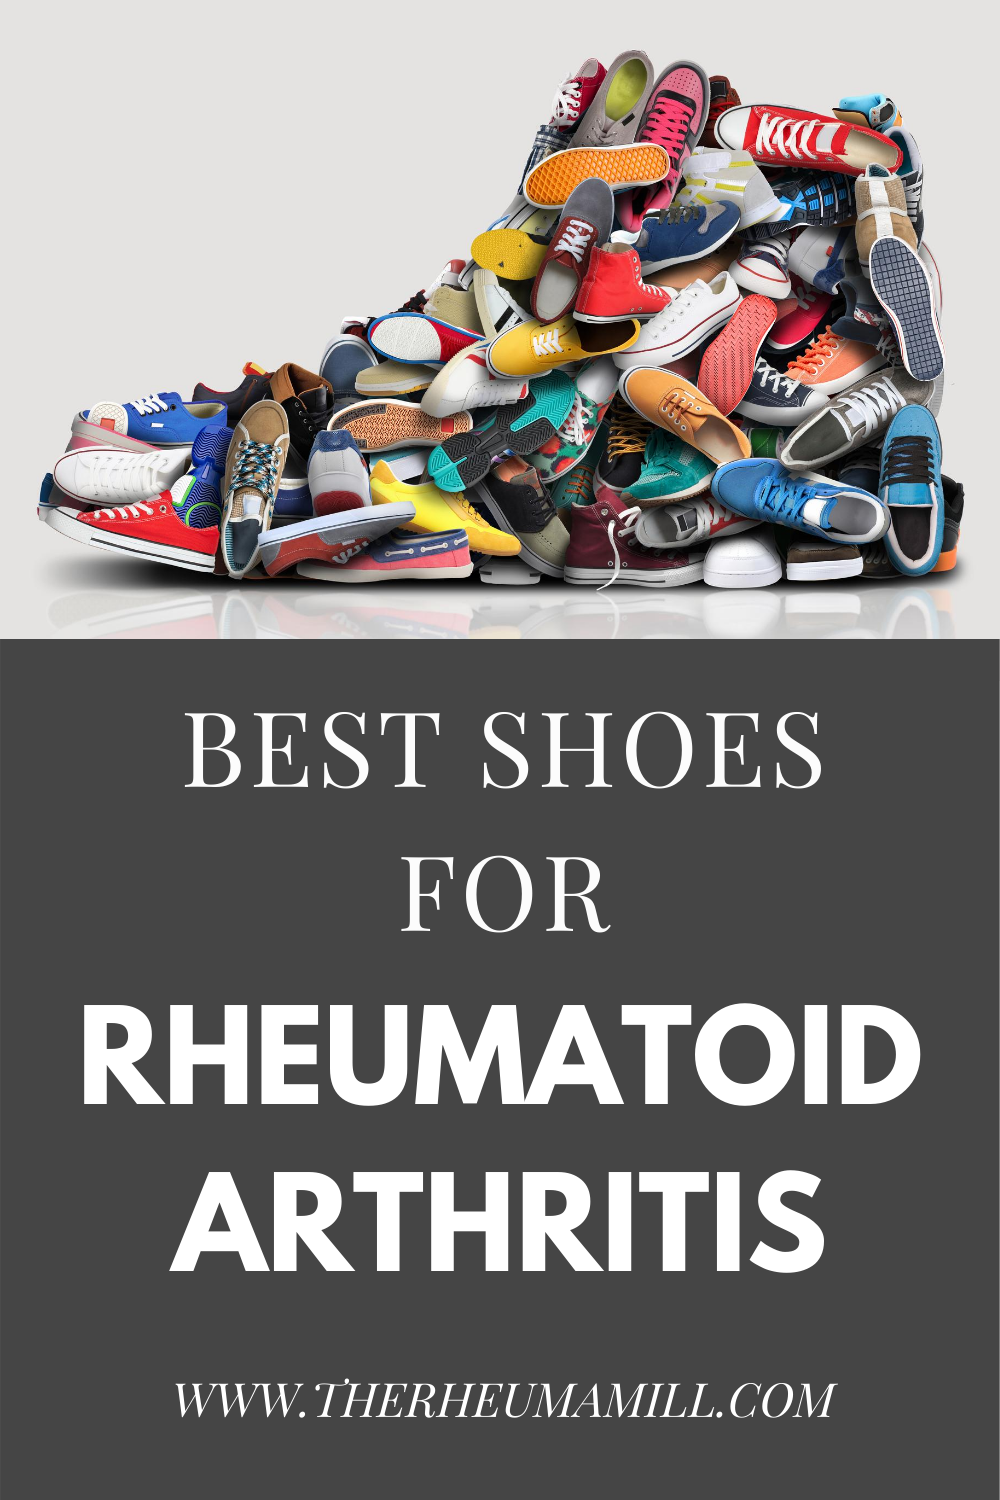 Shoes for Rheumatoid Arthritis